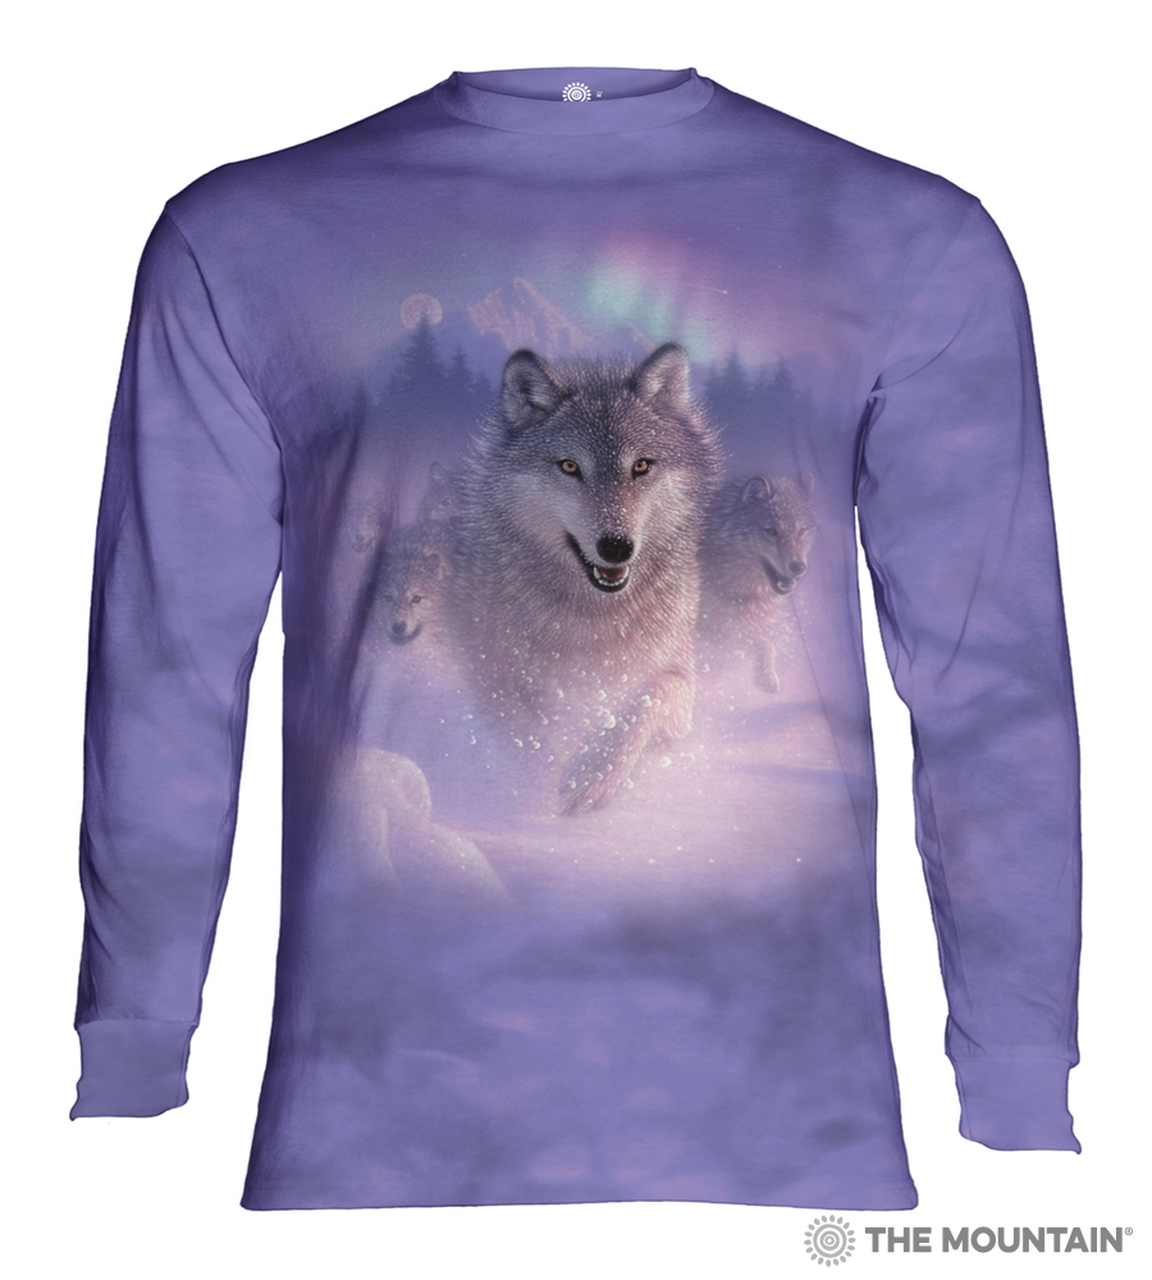 Northern Lights - 45-4881 - Adult Long Sleeve T-shirt